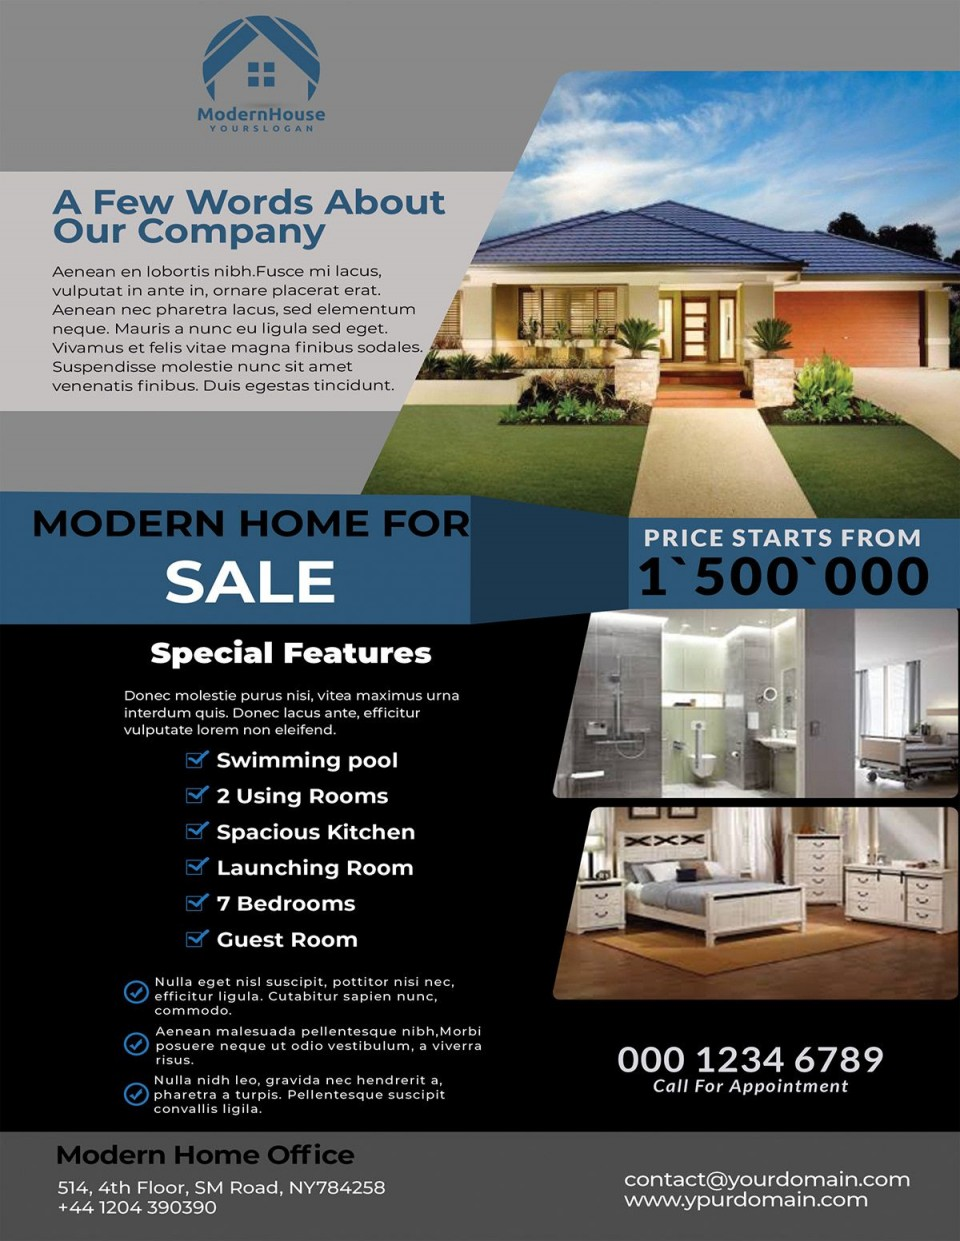 000 Fascinating House For Sale Flyer Template Photo  Free Real Estate Example By Owner960